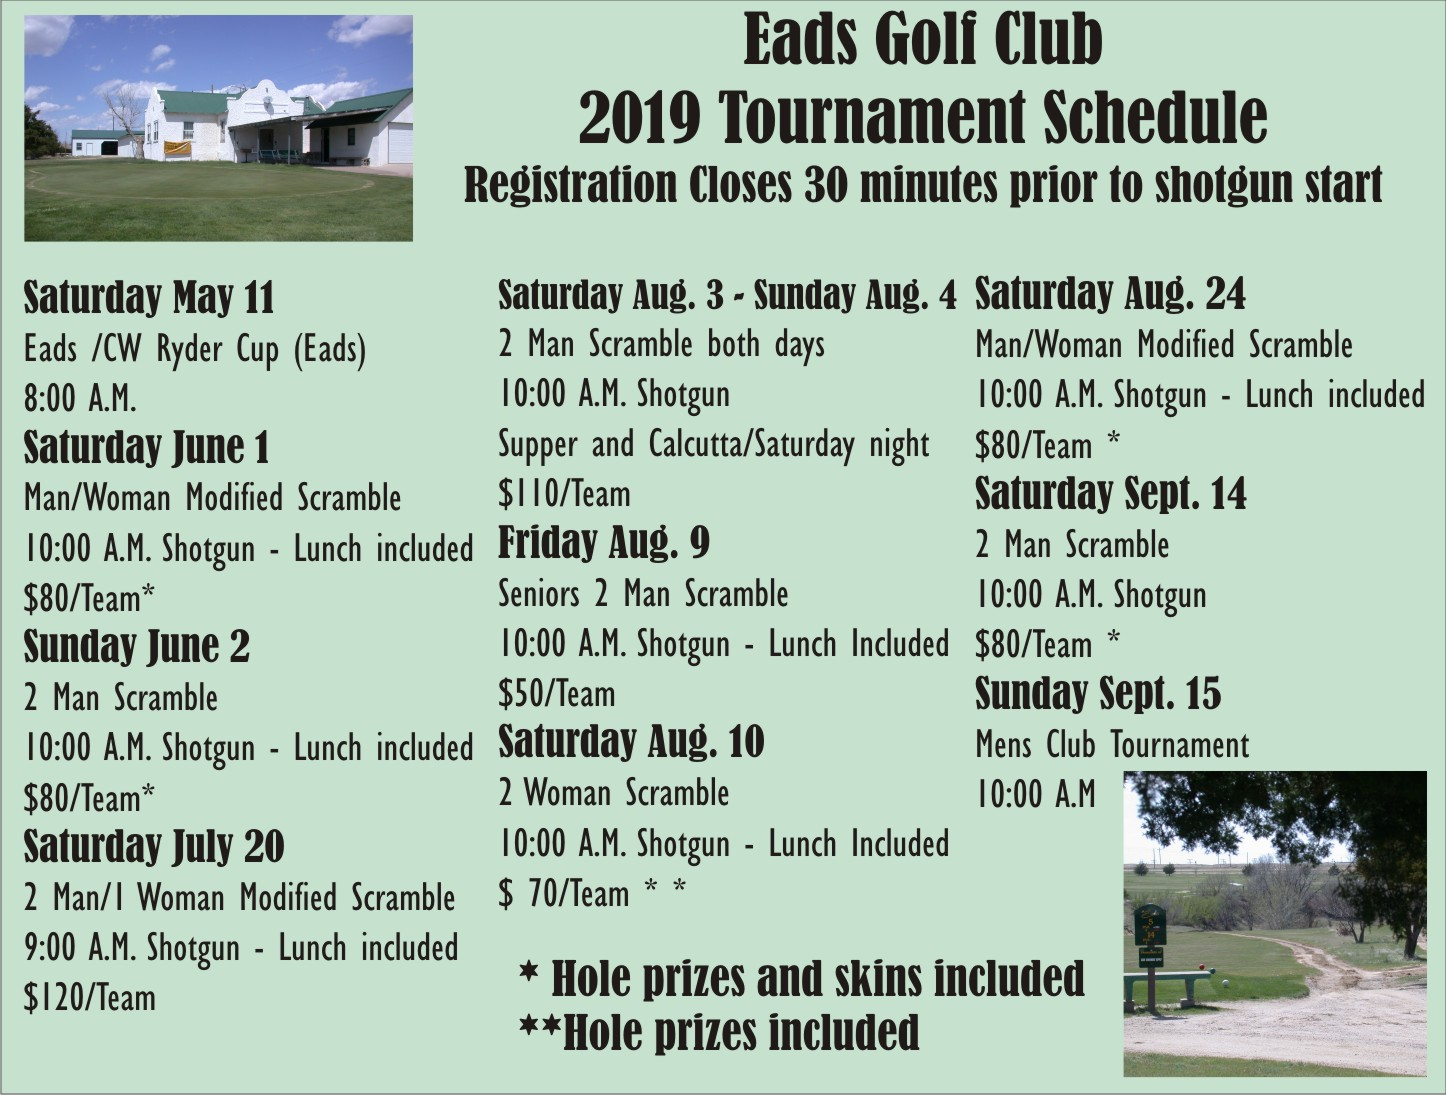 AD 2019-04 Sports Events - Golf Schedule